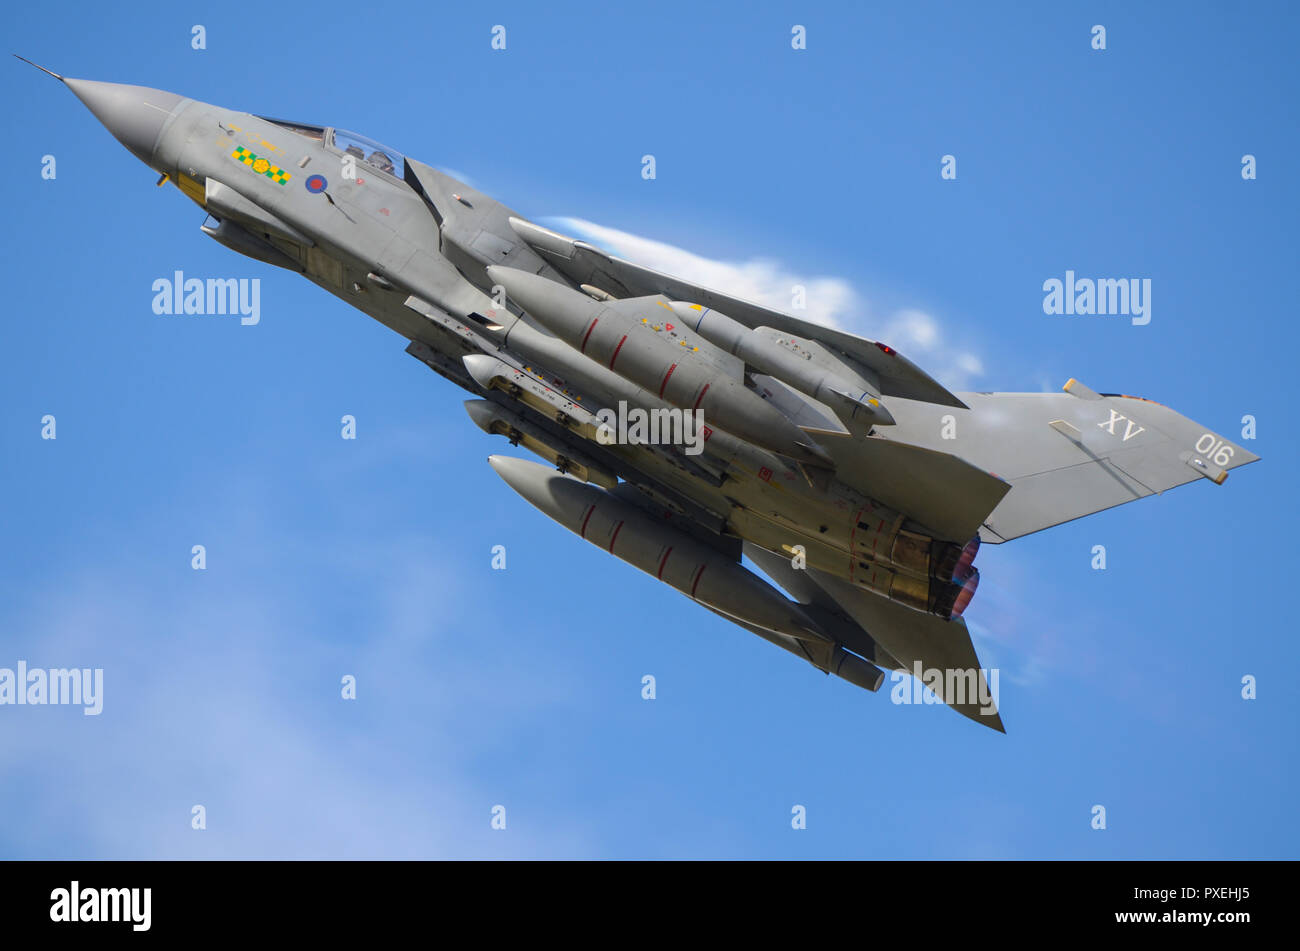 raf-royal-air-force-panavia-tornado-gr4-jet-fighter-bomber-plane-climbing-at-speed-with-vapour-condensation-forming-above-the-wing-blue-sky-PXEHJ5.jpg